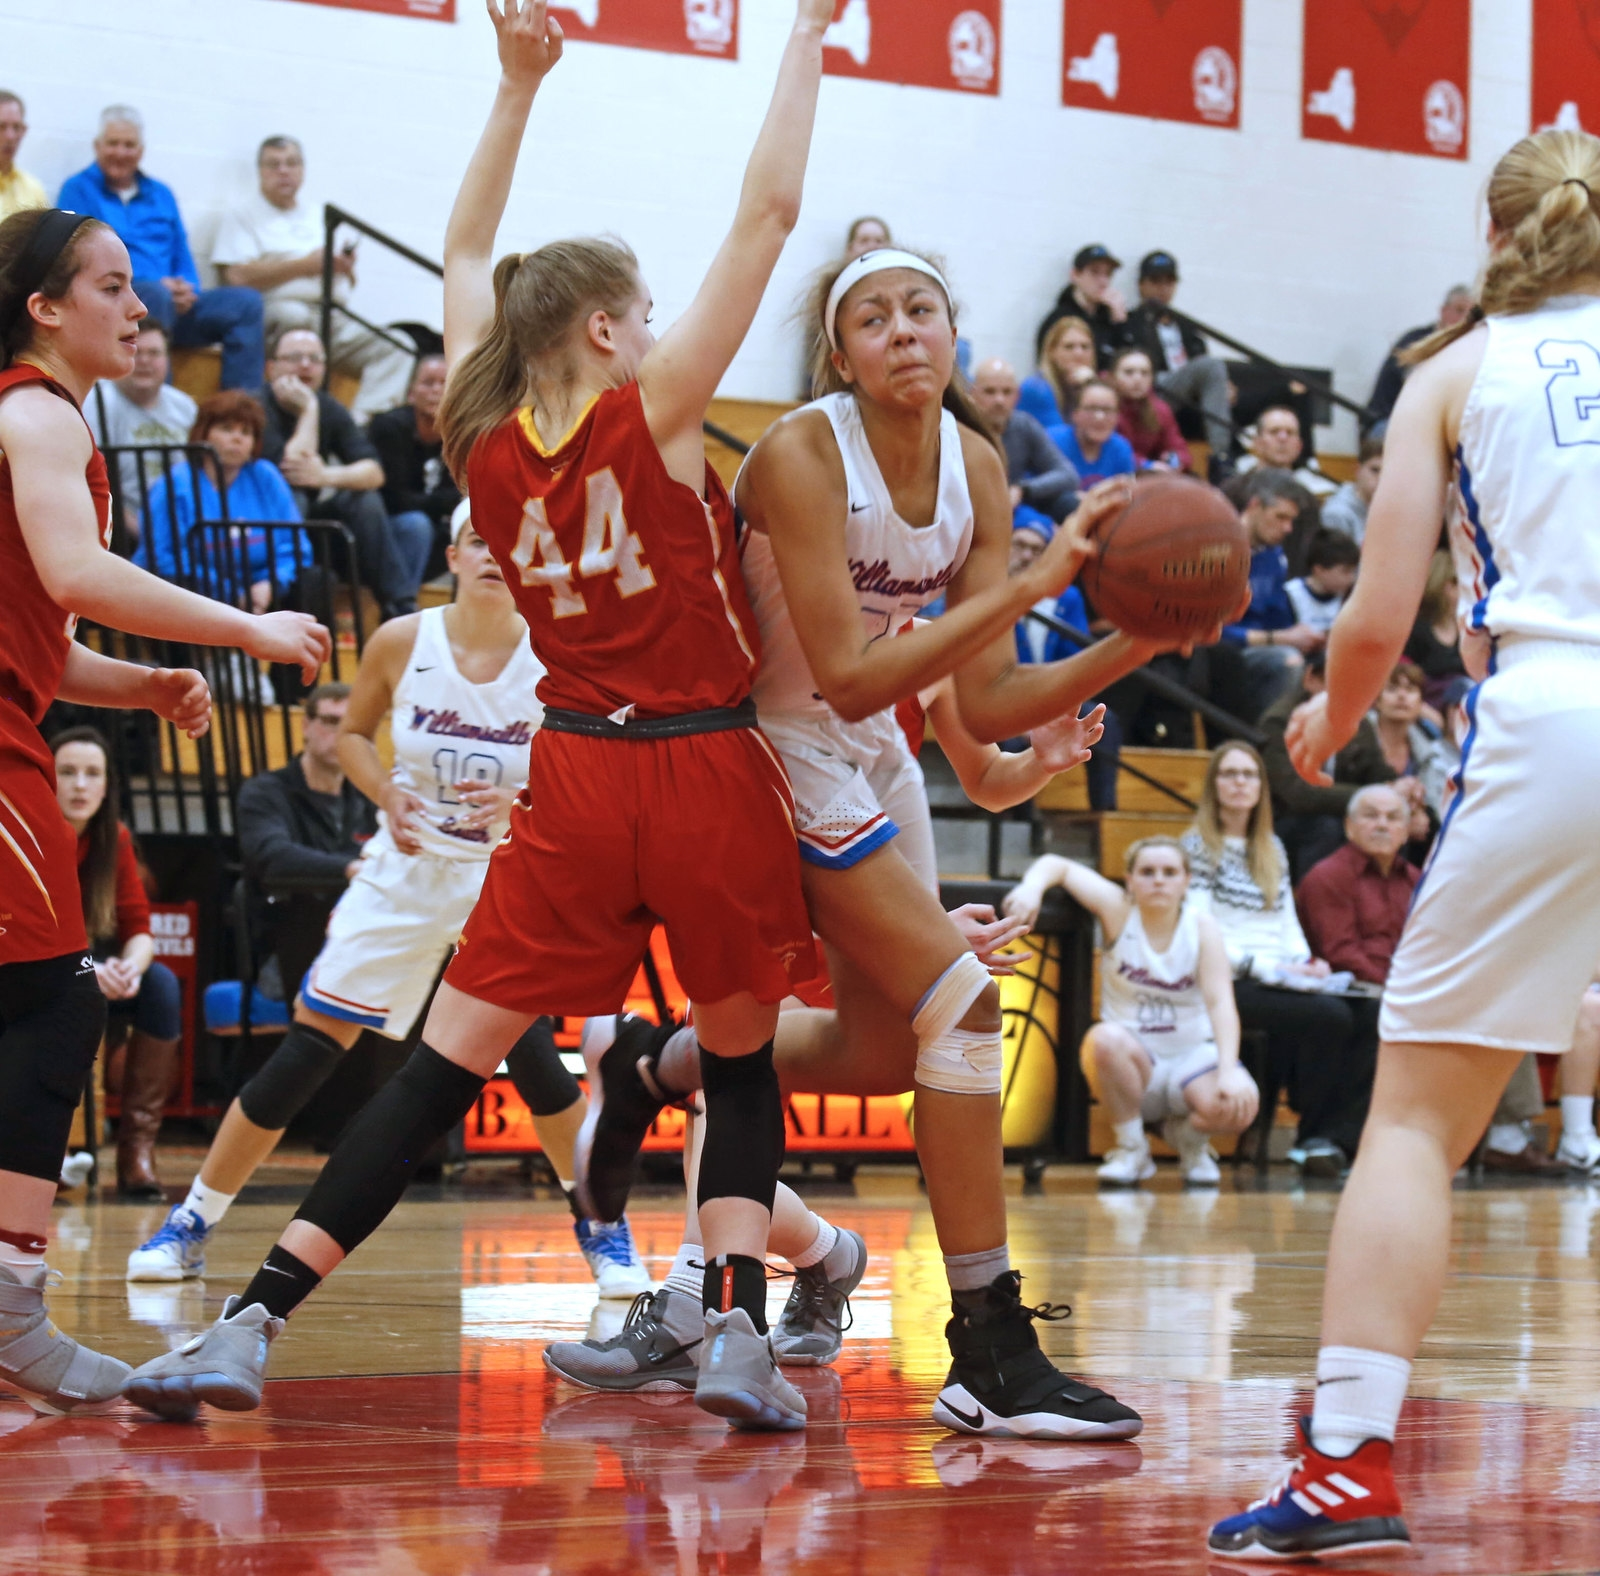 South's Amaria DeBerry (42) still makes the basket as East's Madeline Reid (44) tries to contain her on the approach.